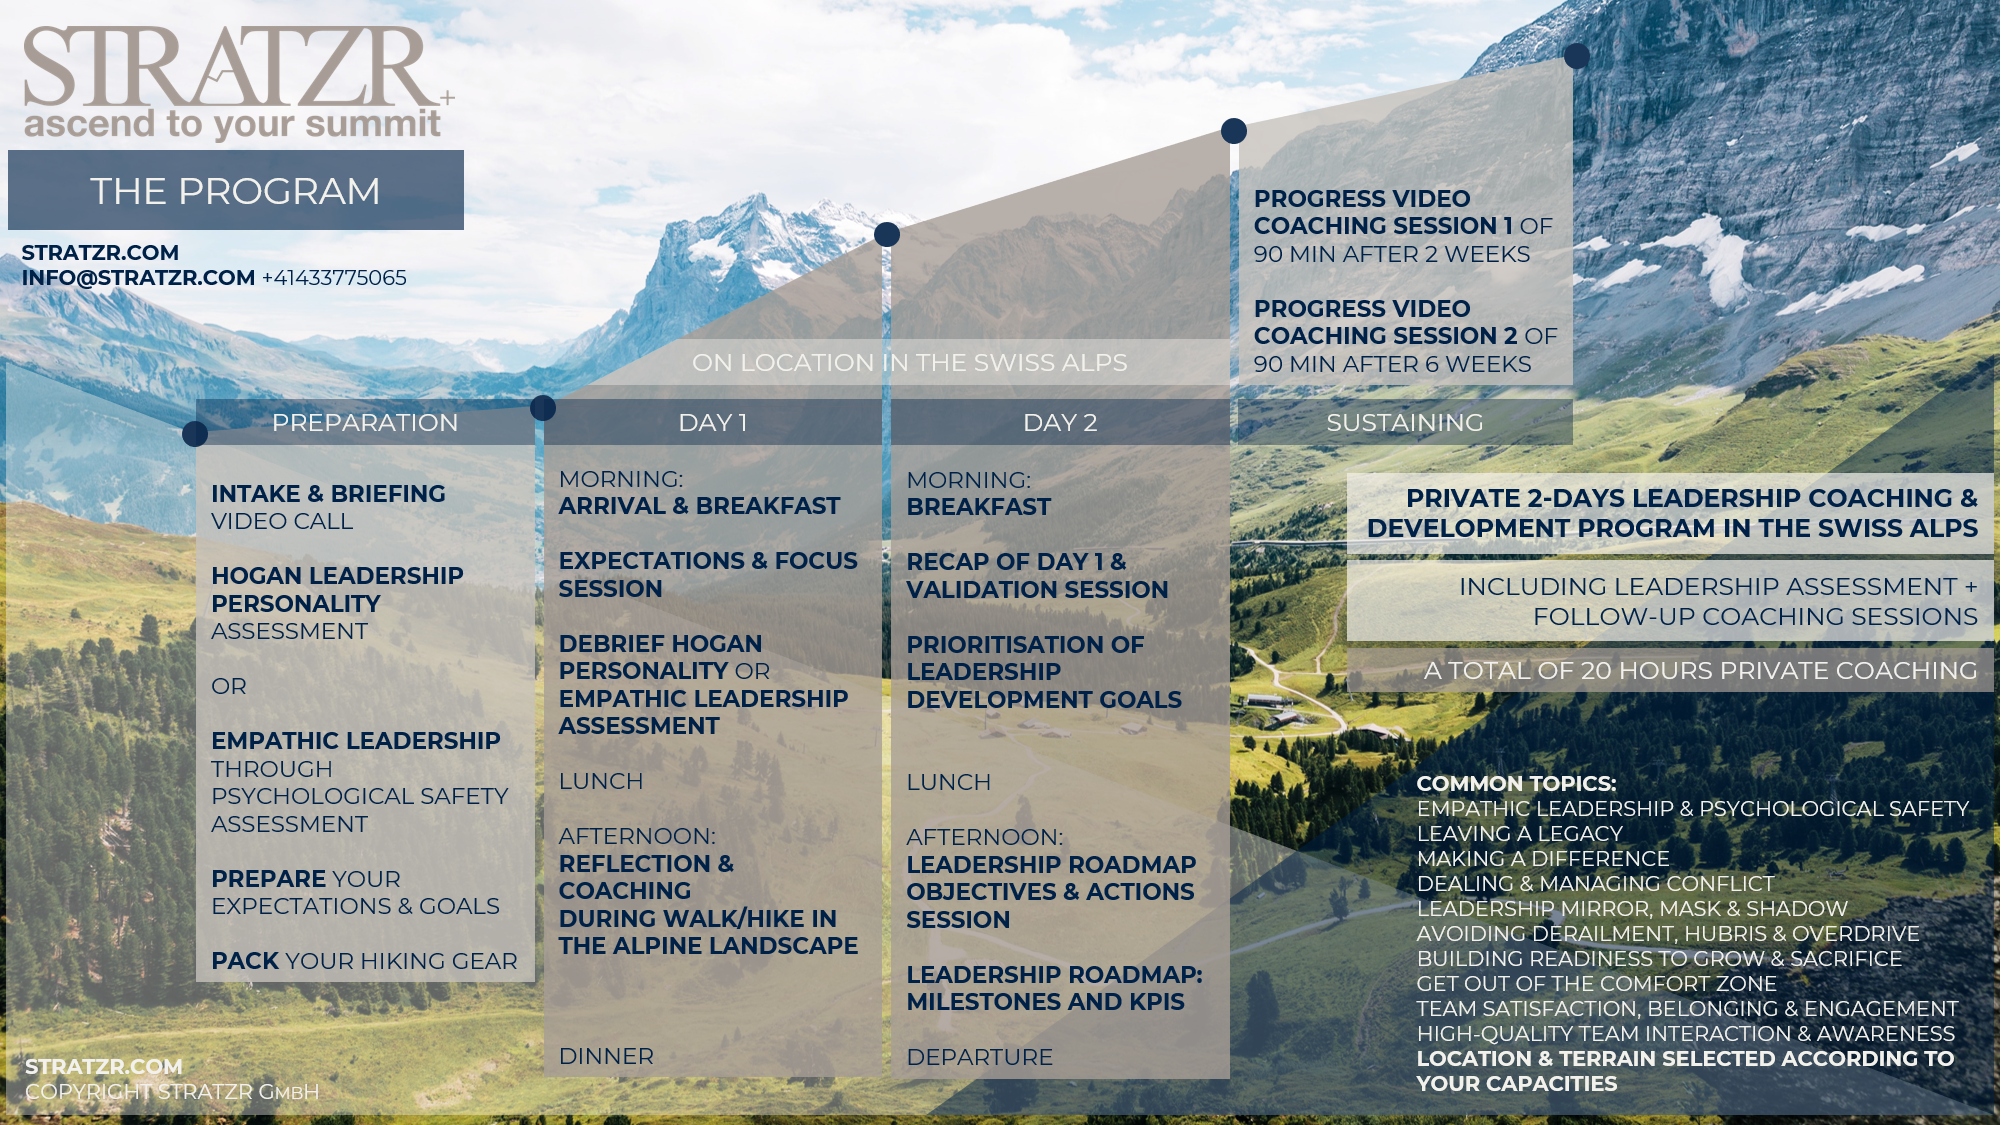 Ascend to your Summit - private leadership coaching & development program in the Swiss Alps by STRATZR